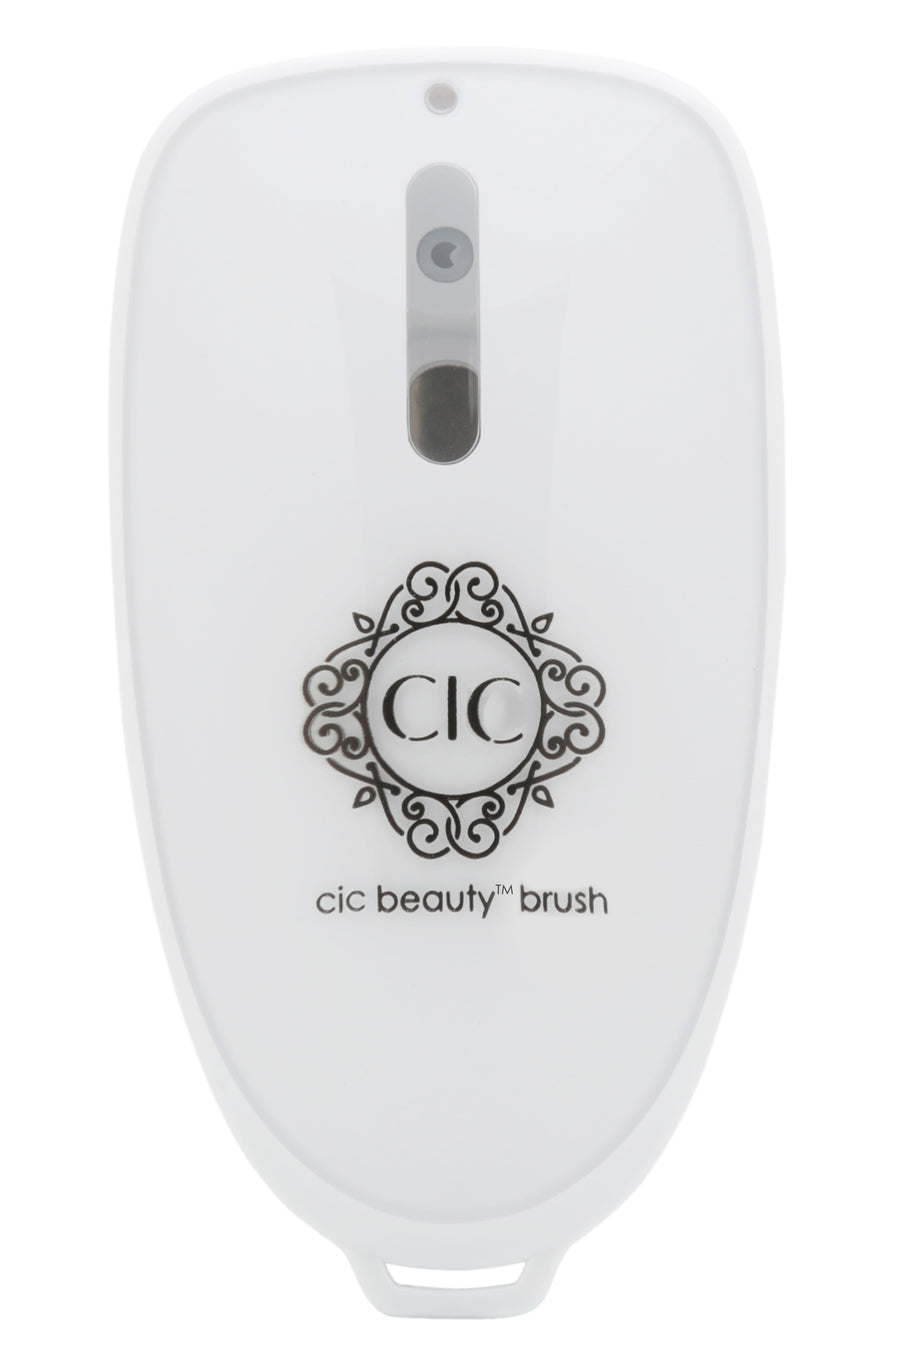 cic beauty brush, 4-in-one ultrasonic de-tangler, scalp massager and a.c.e. infuser (patent pending) (kit with charger and sample of a.c.e)